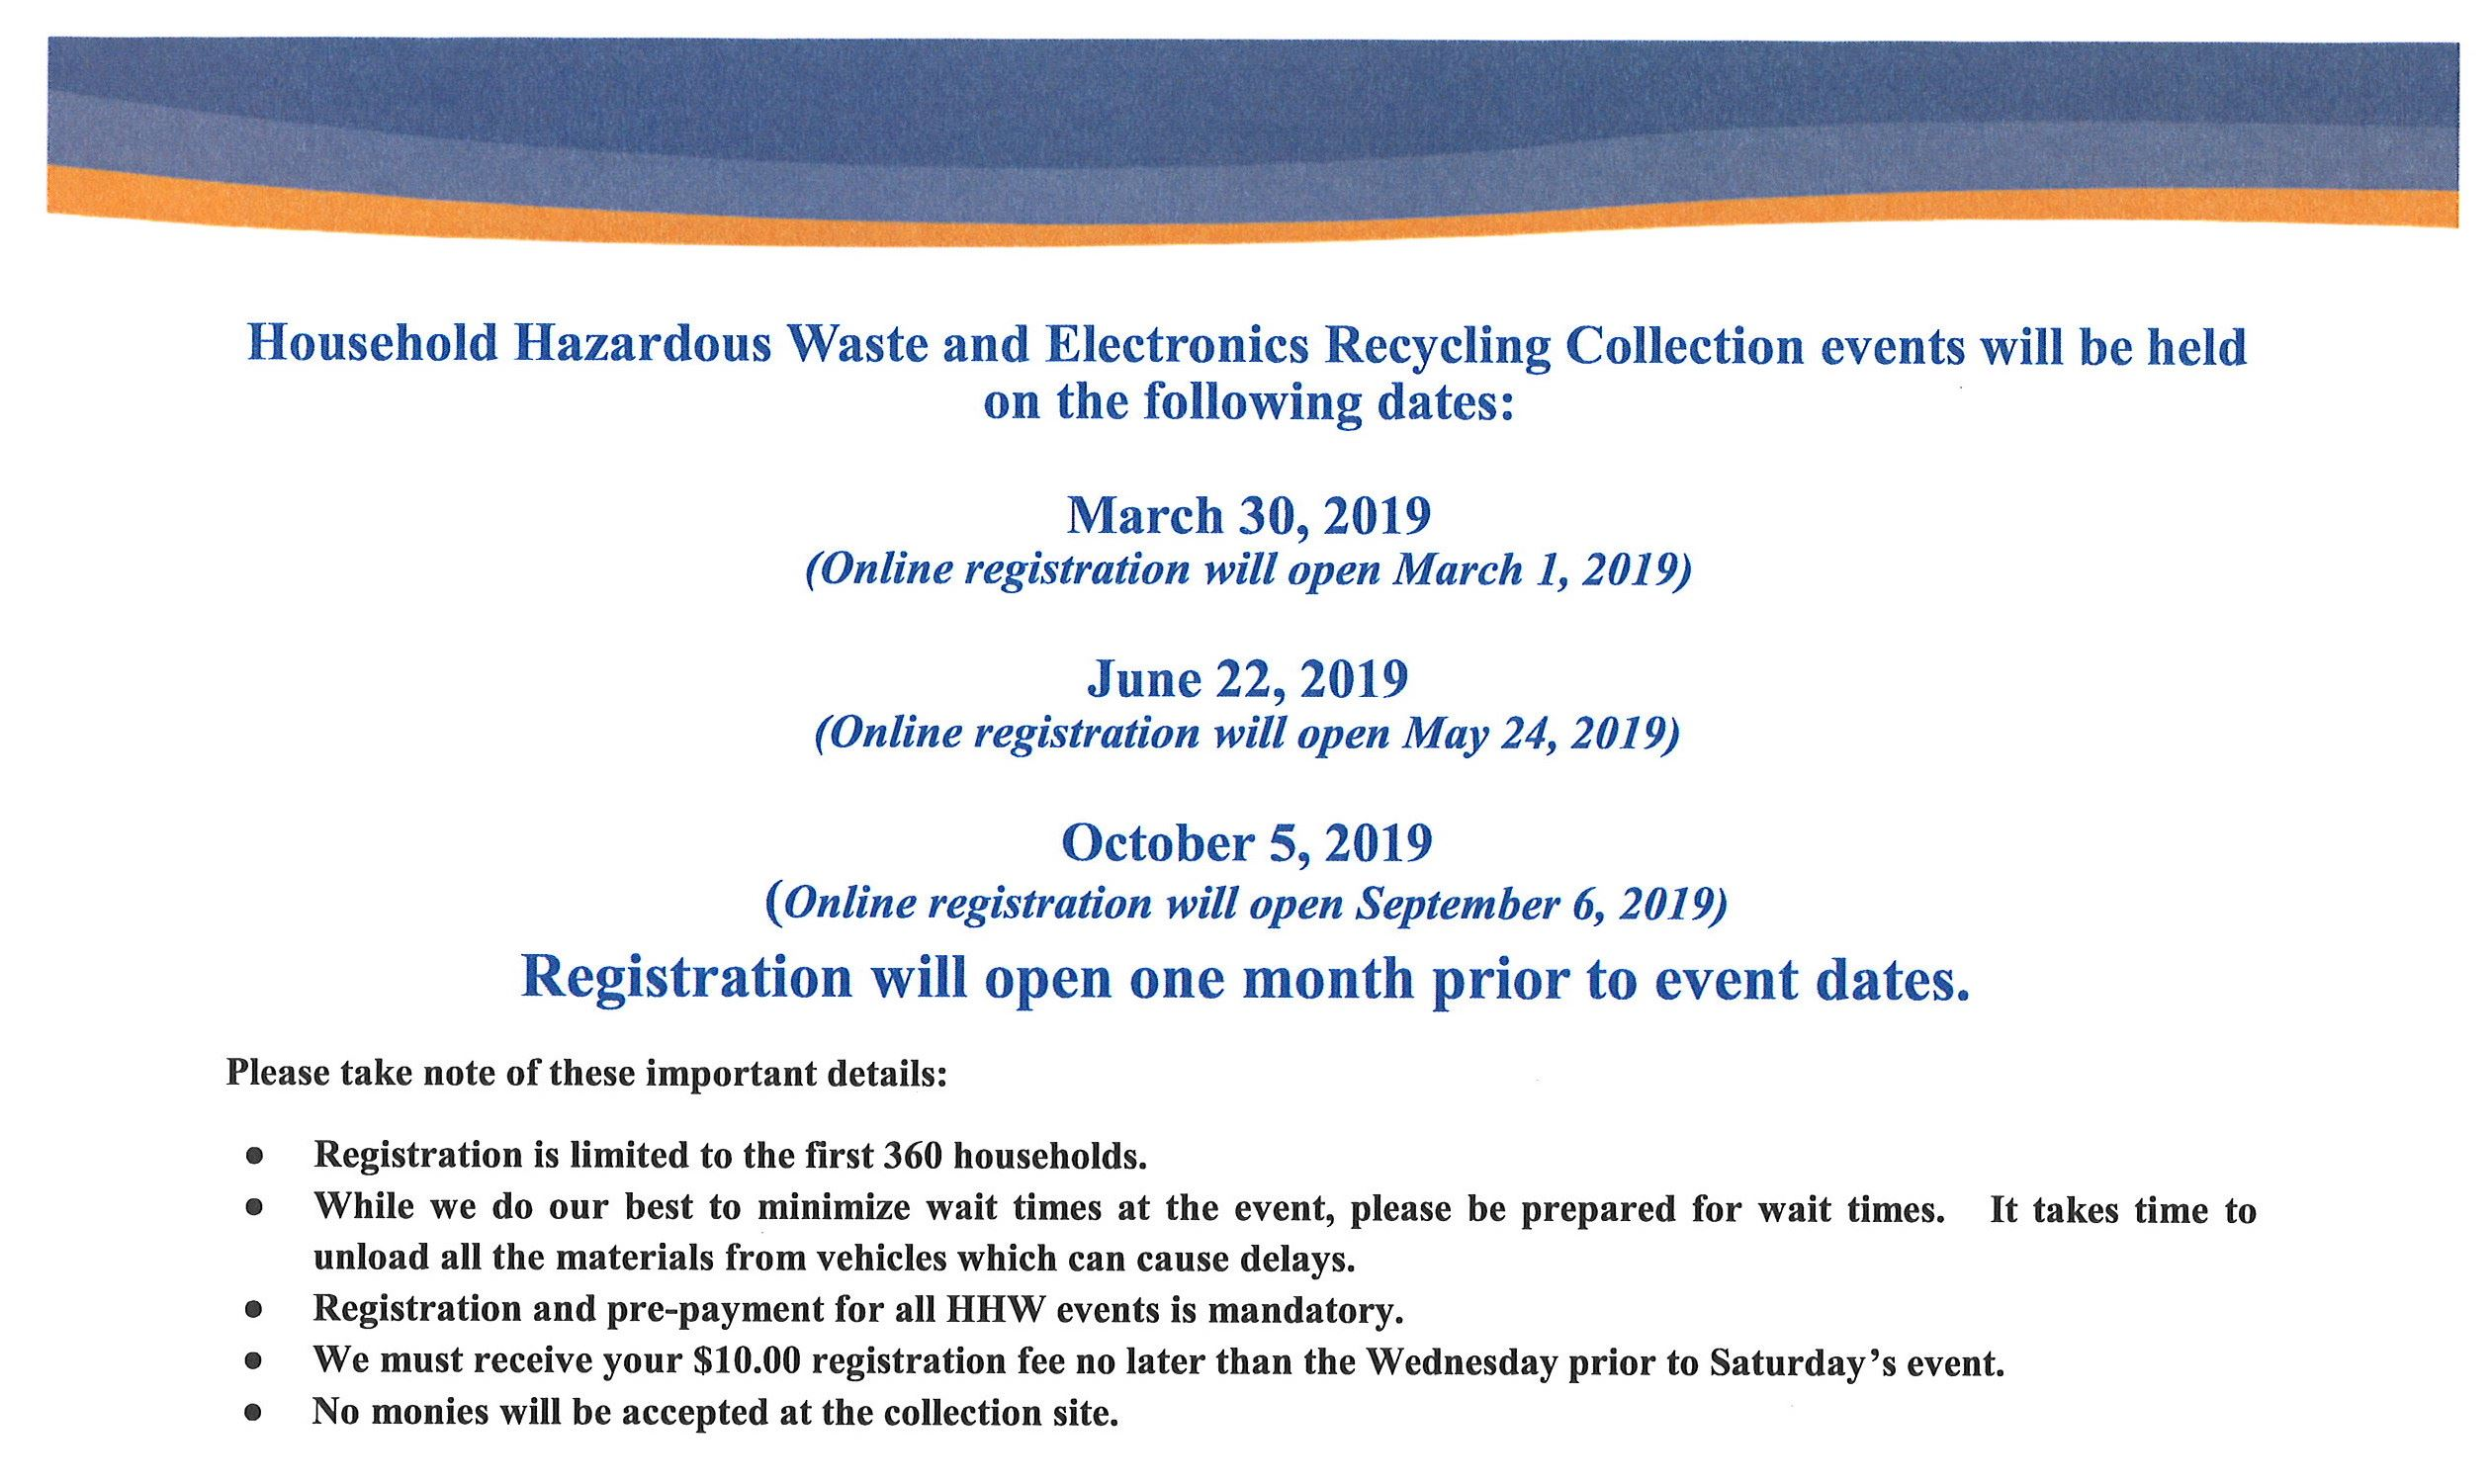 Household Hazardous Waste and Electronics Recycling Collection Events Flyer